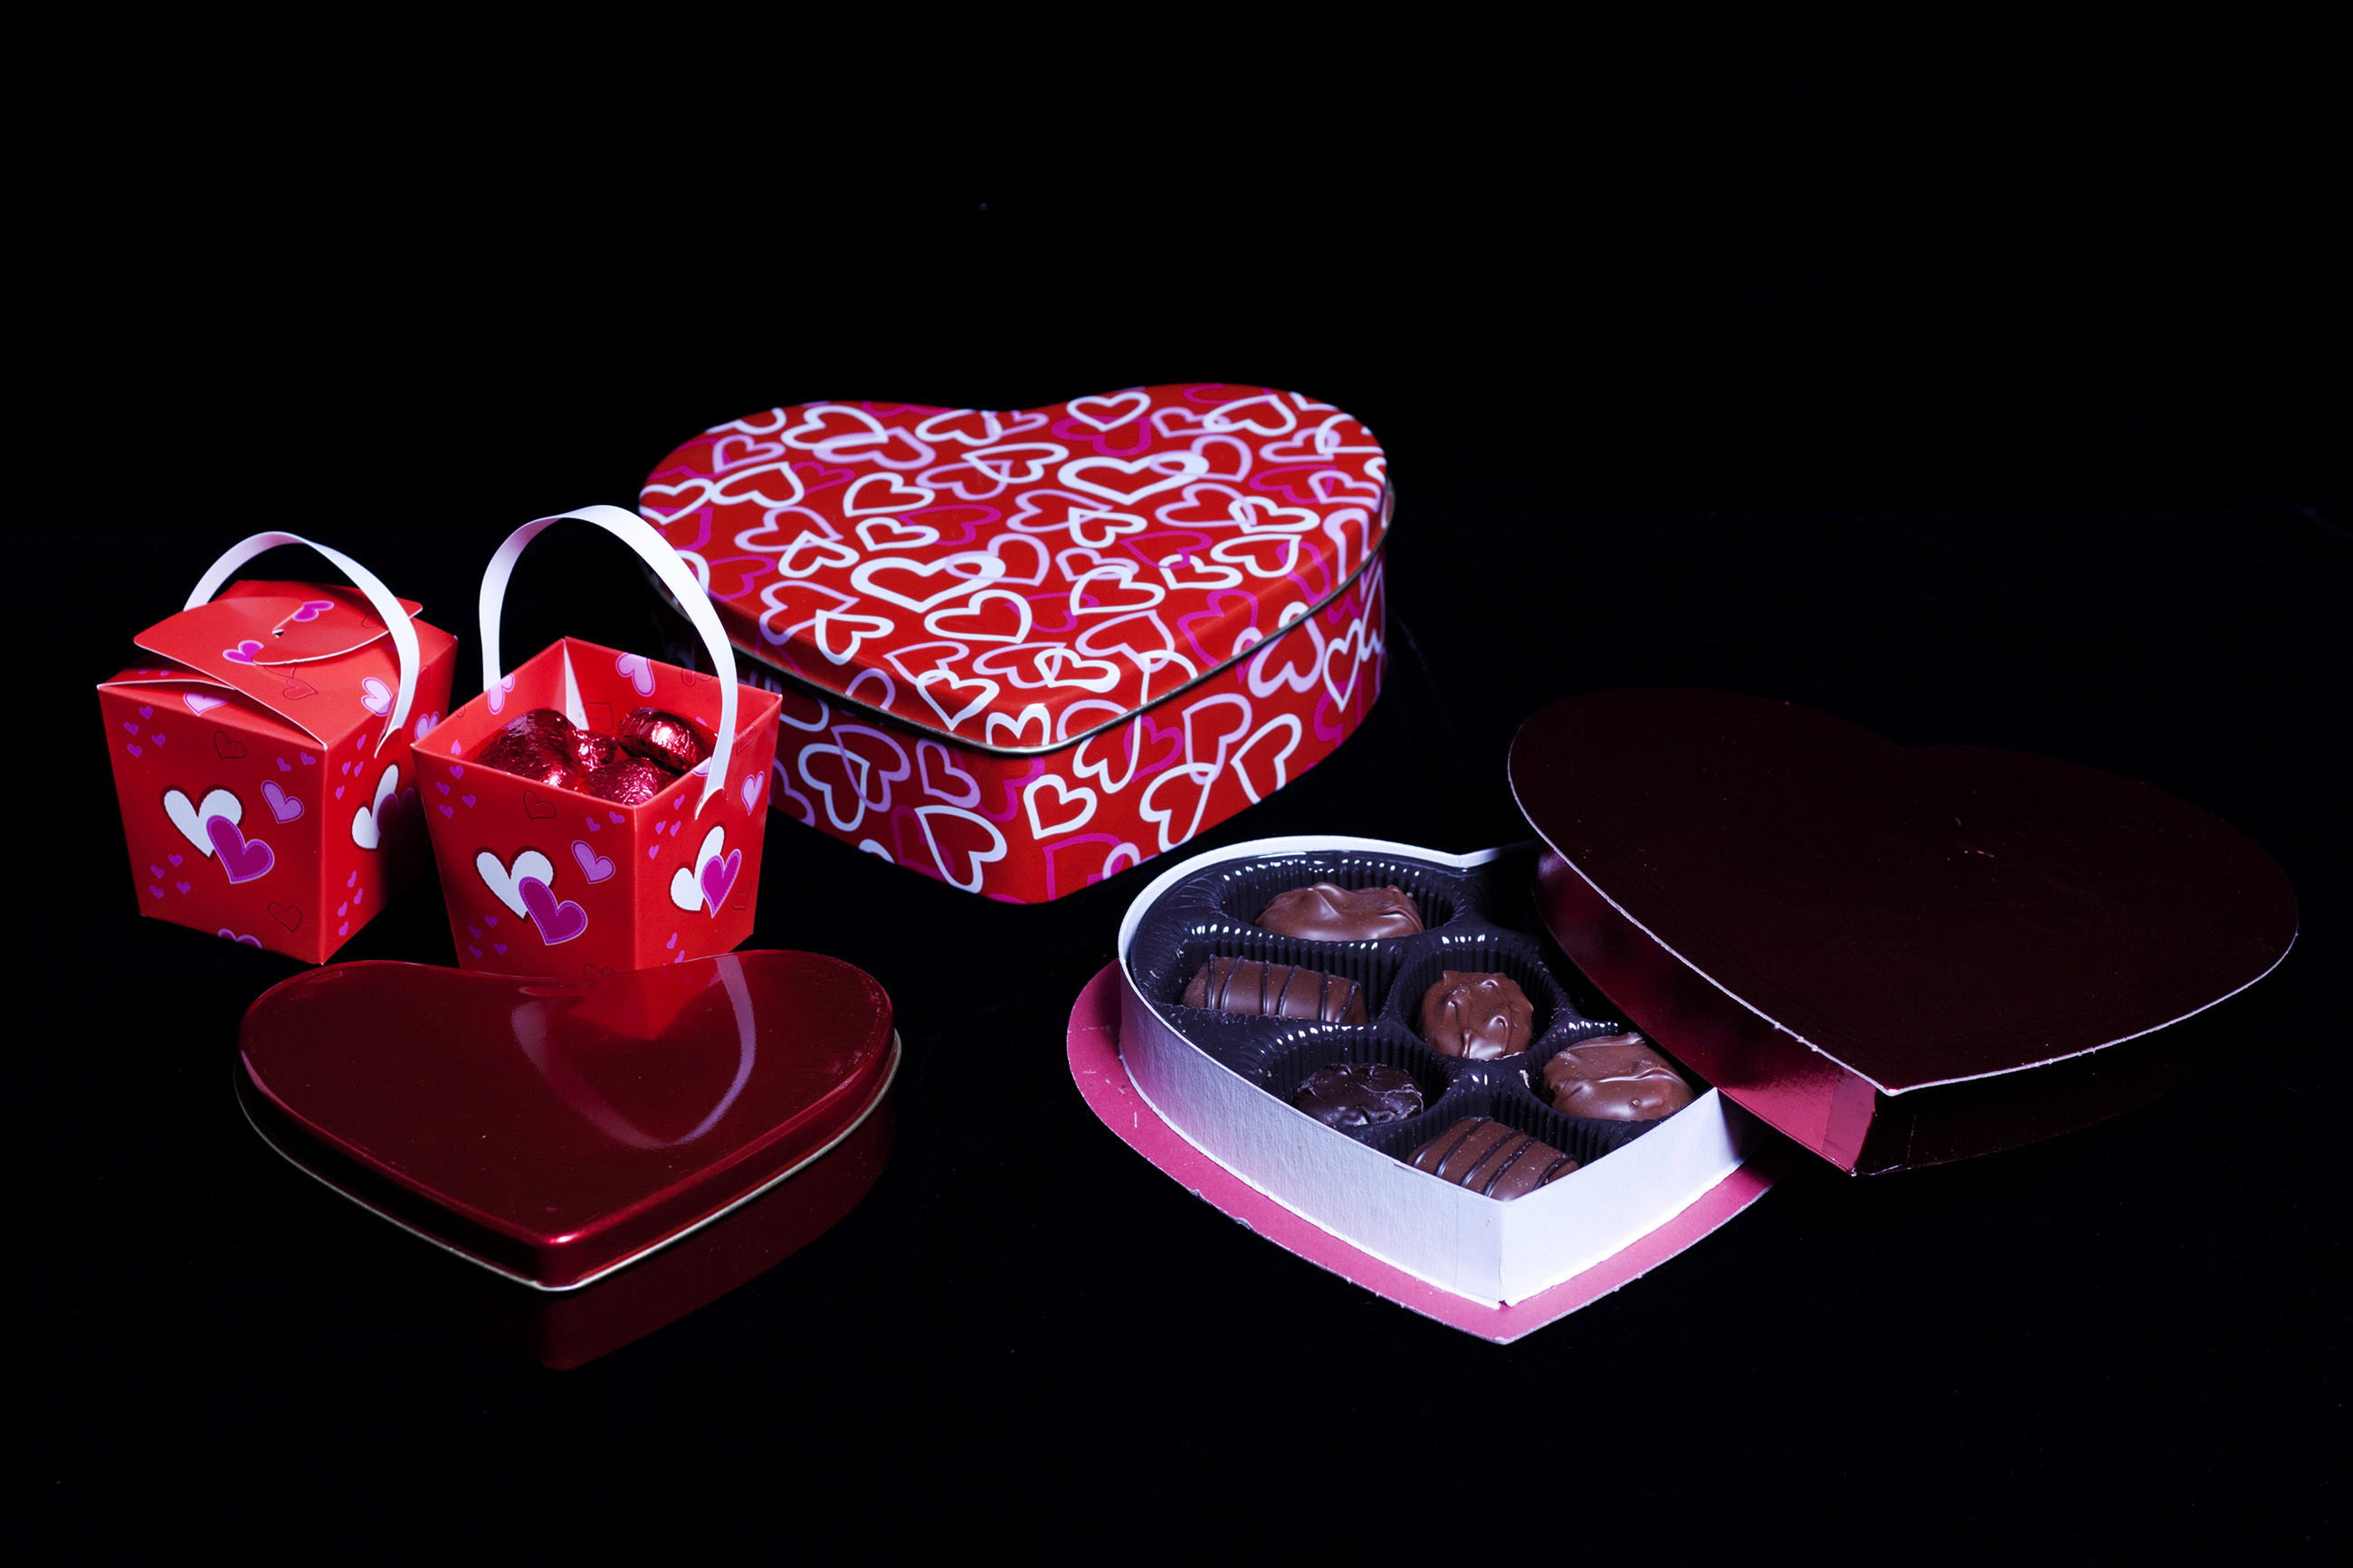 Valentines day gift and chocolates photo